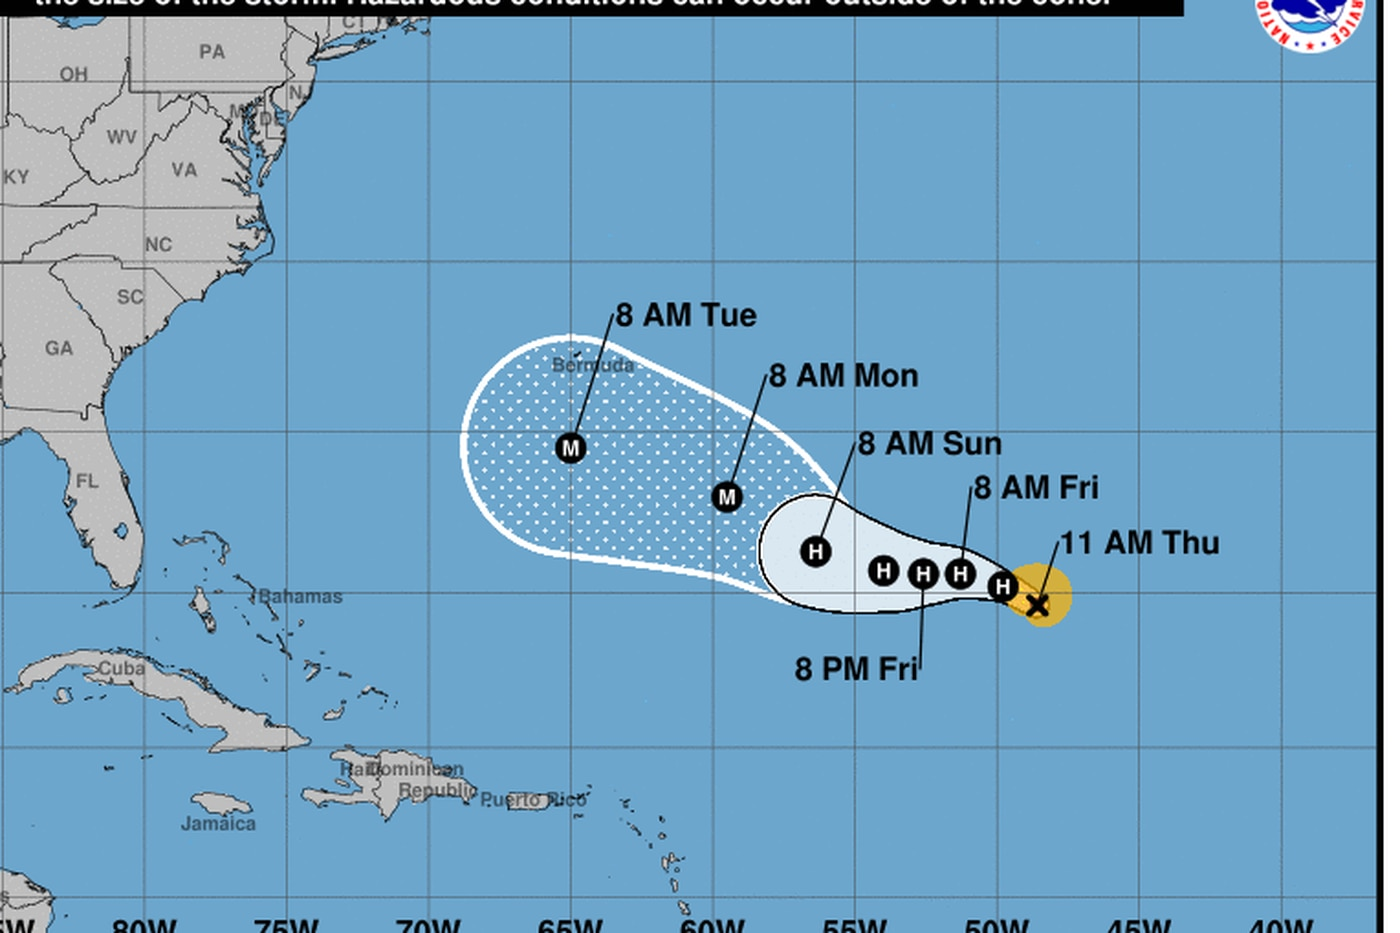 TROPICS: Florence to become a hurricane today; TD 9 strengthening